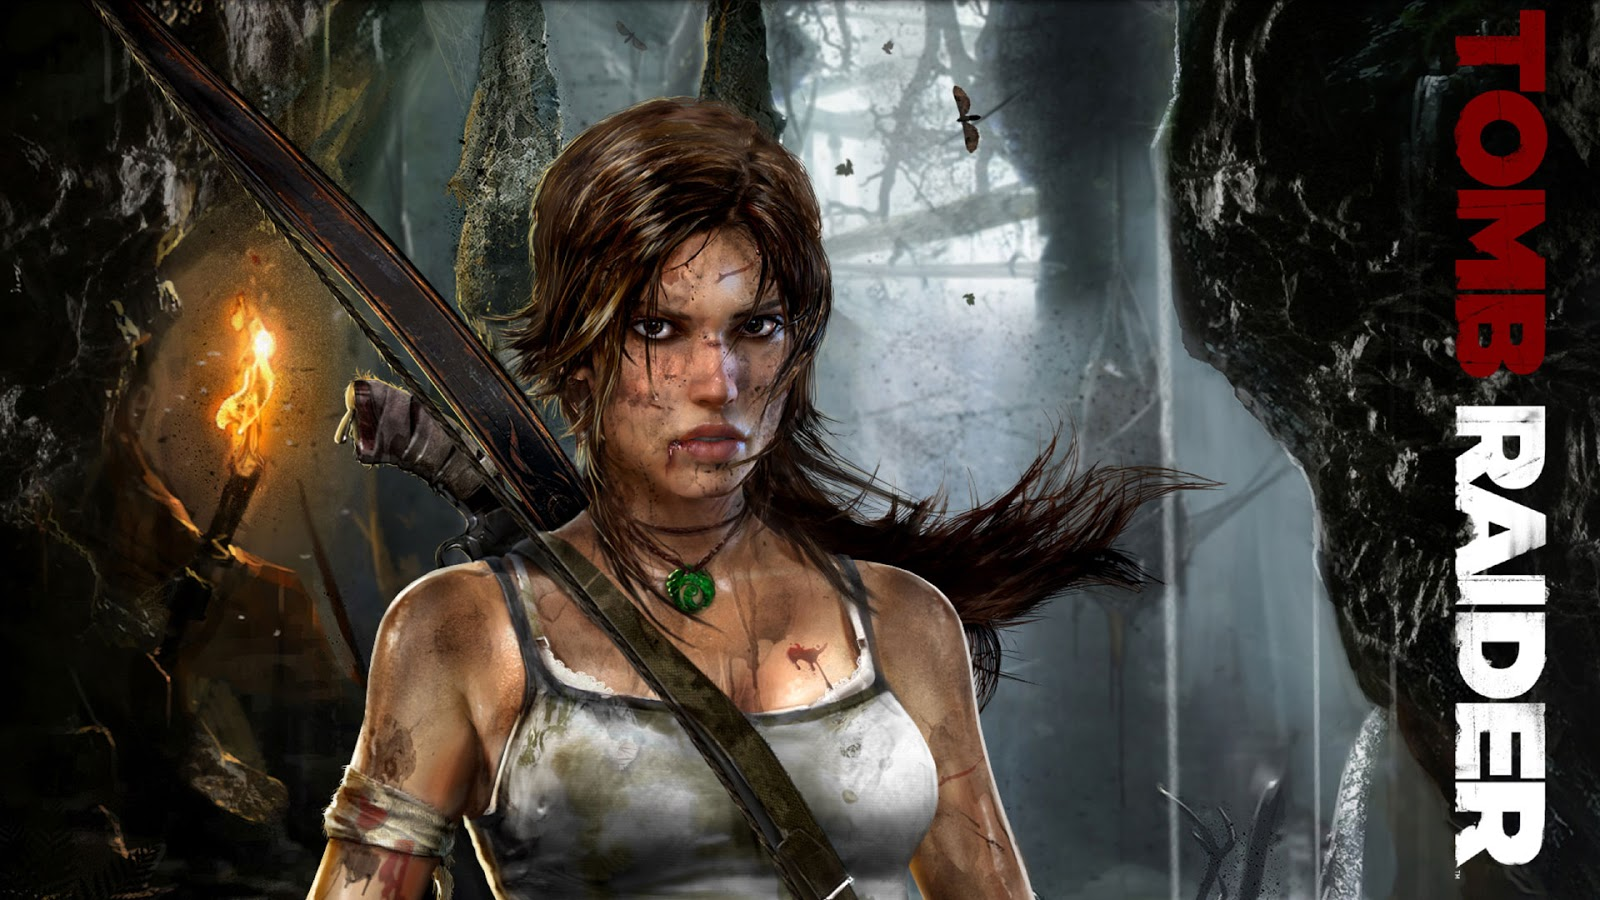 Tomb Raider HD & Widescreen Wallpaper 0.925106595912764